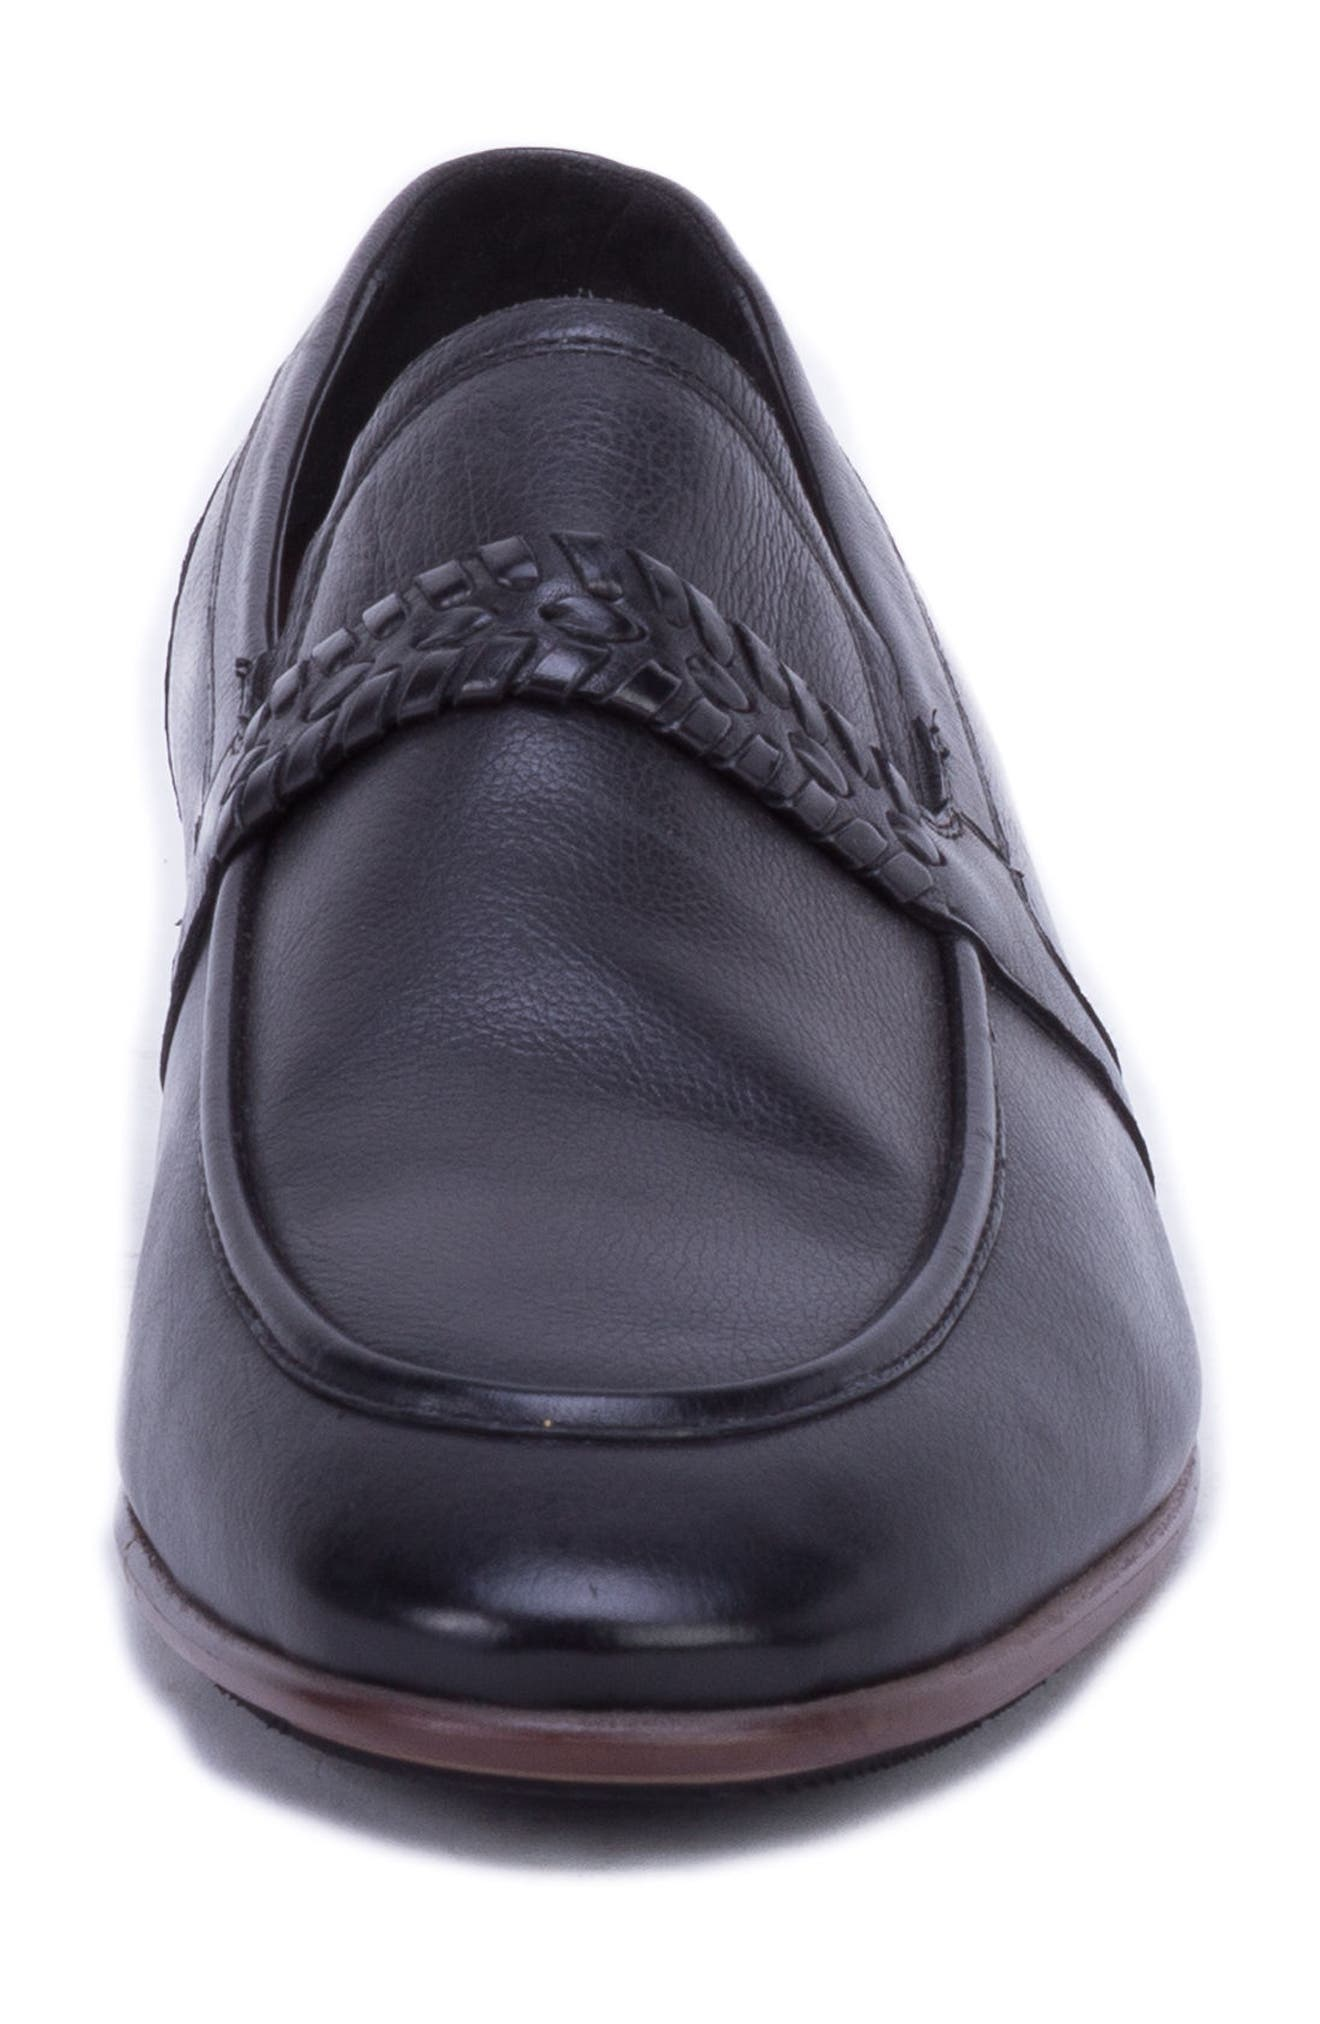 Robinson Whipstitch Apron Toe Loafer,                             Alternate thumbnail 4, color,                             BLACK LEATHER